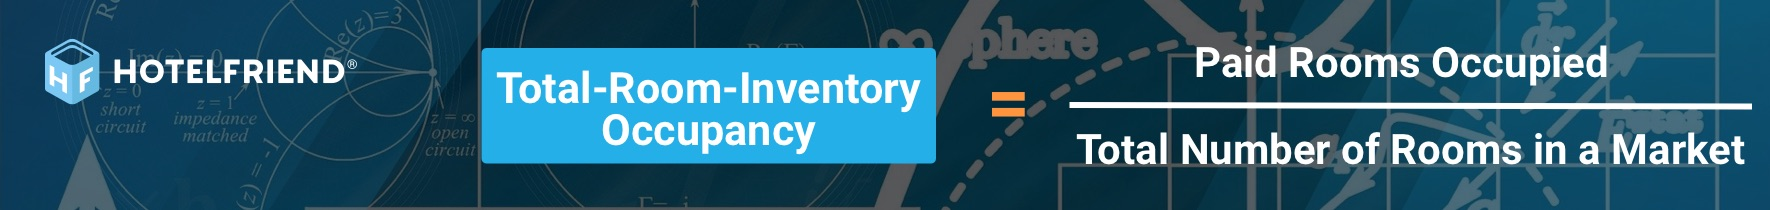 Total-Room-Inventory Occupancy